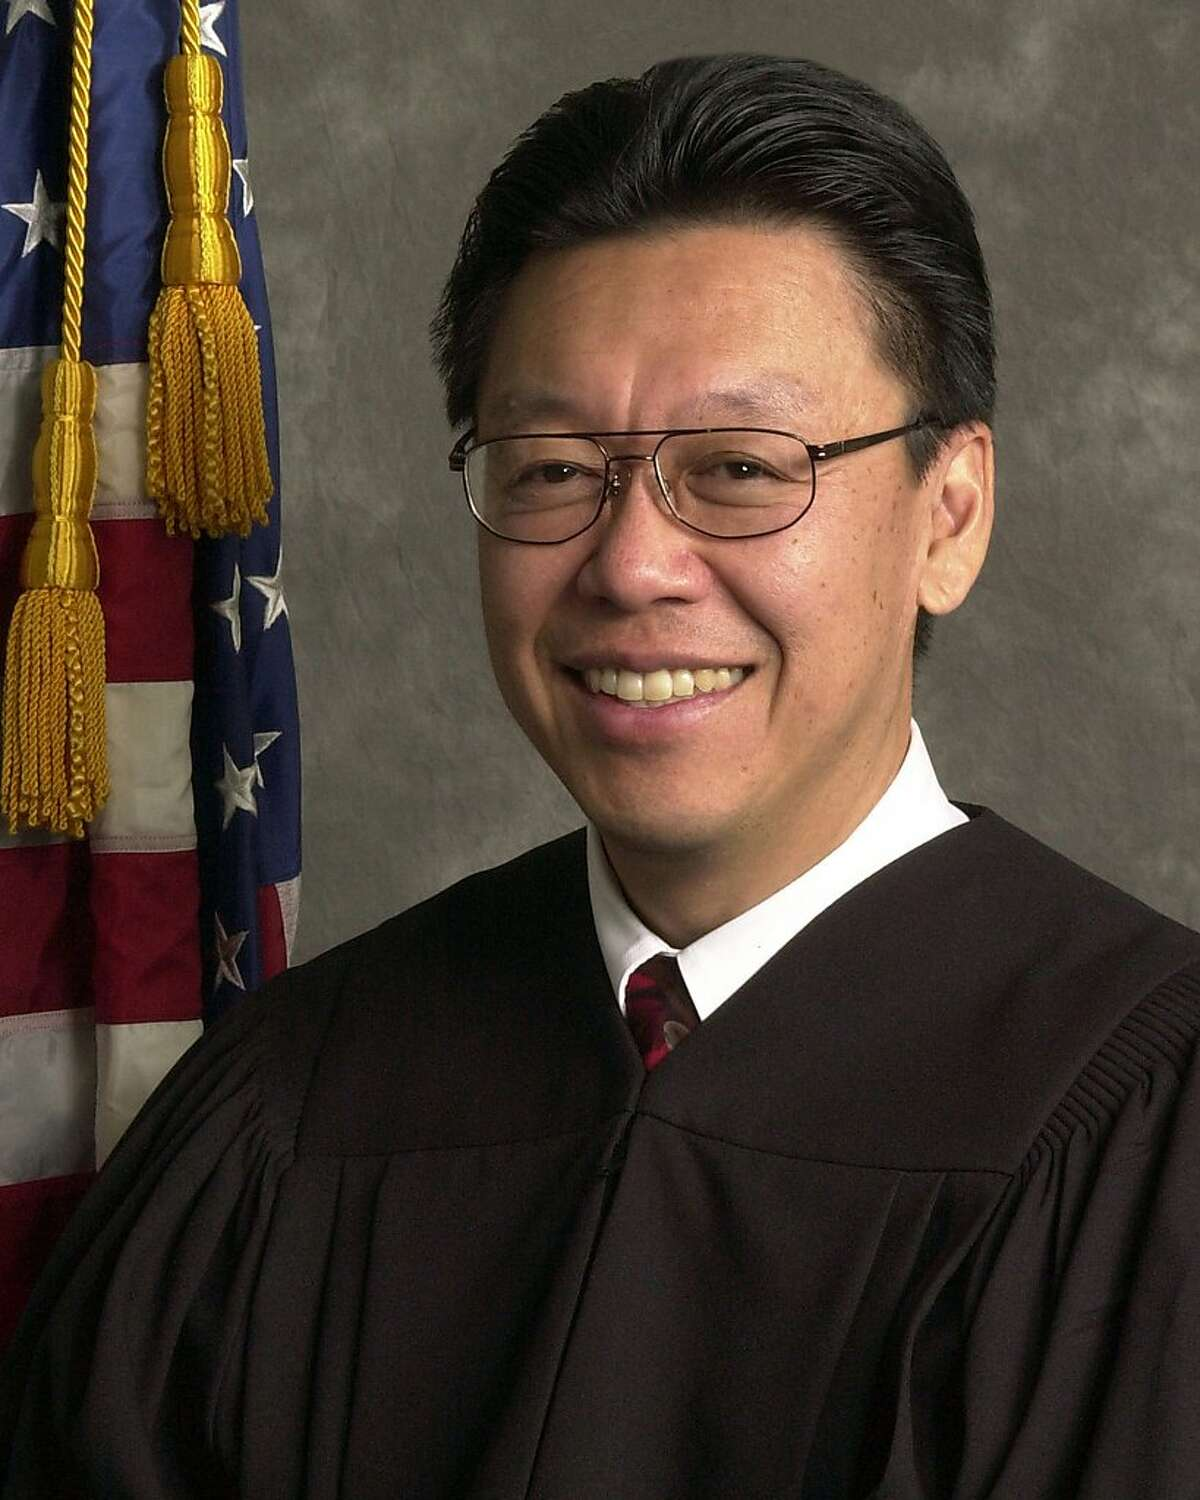 U.S. Magistrate Edward Chen, who as a lawyer helped persuade a judge in 1983 to overturn a Japanese-American man�s conviction for defying World War II internment, was nominated by President Obama on Friday to the U.S. District Court in San Francisco, where no Asian-American has ever been a federal judge.